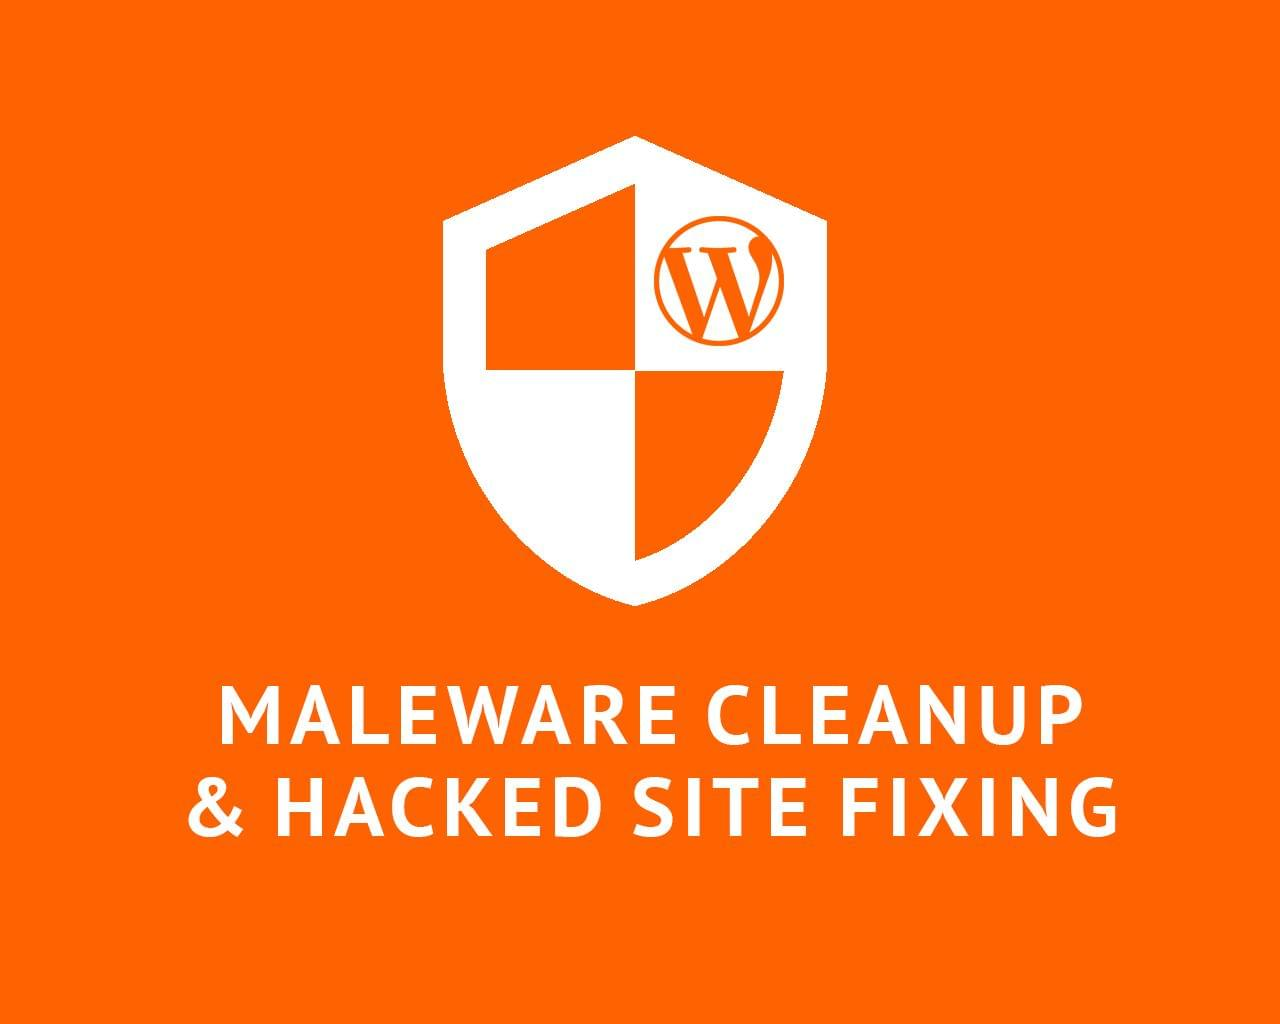 Maleware Cleanup & Hacked Site Fixing by hasanet - 111020